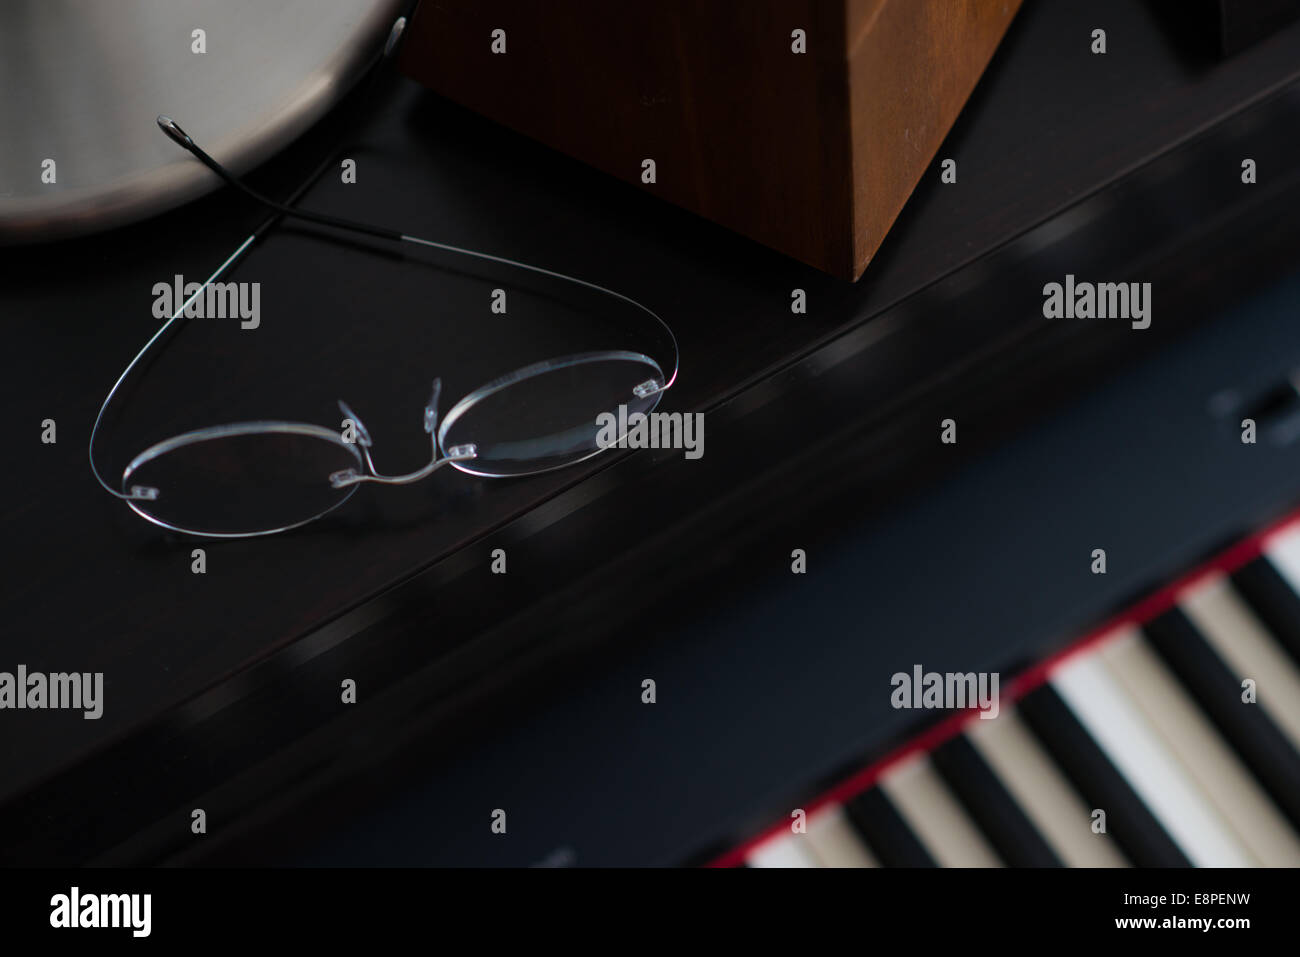 Glasses on Piano - Stock Image